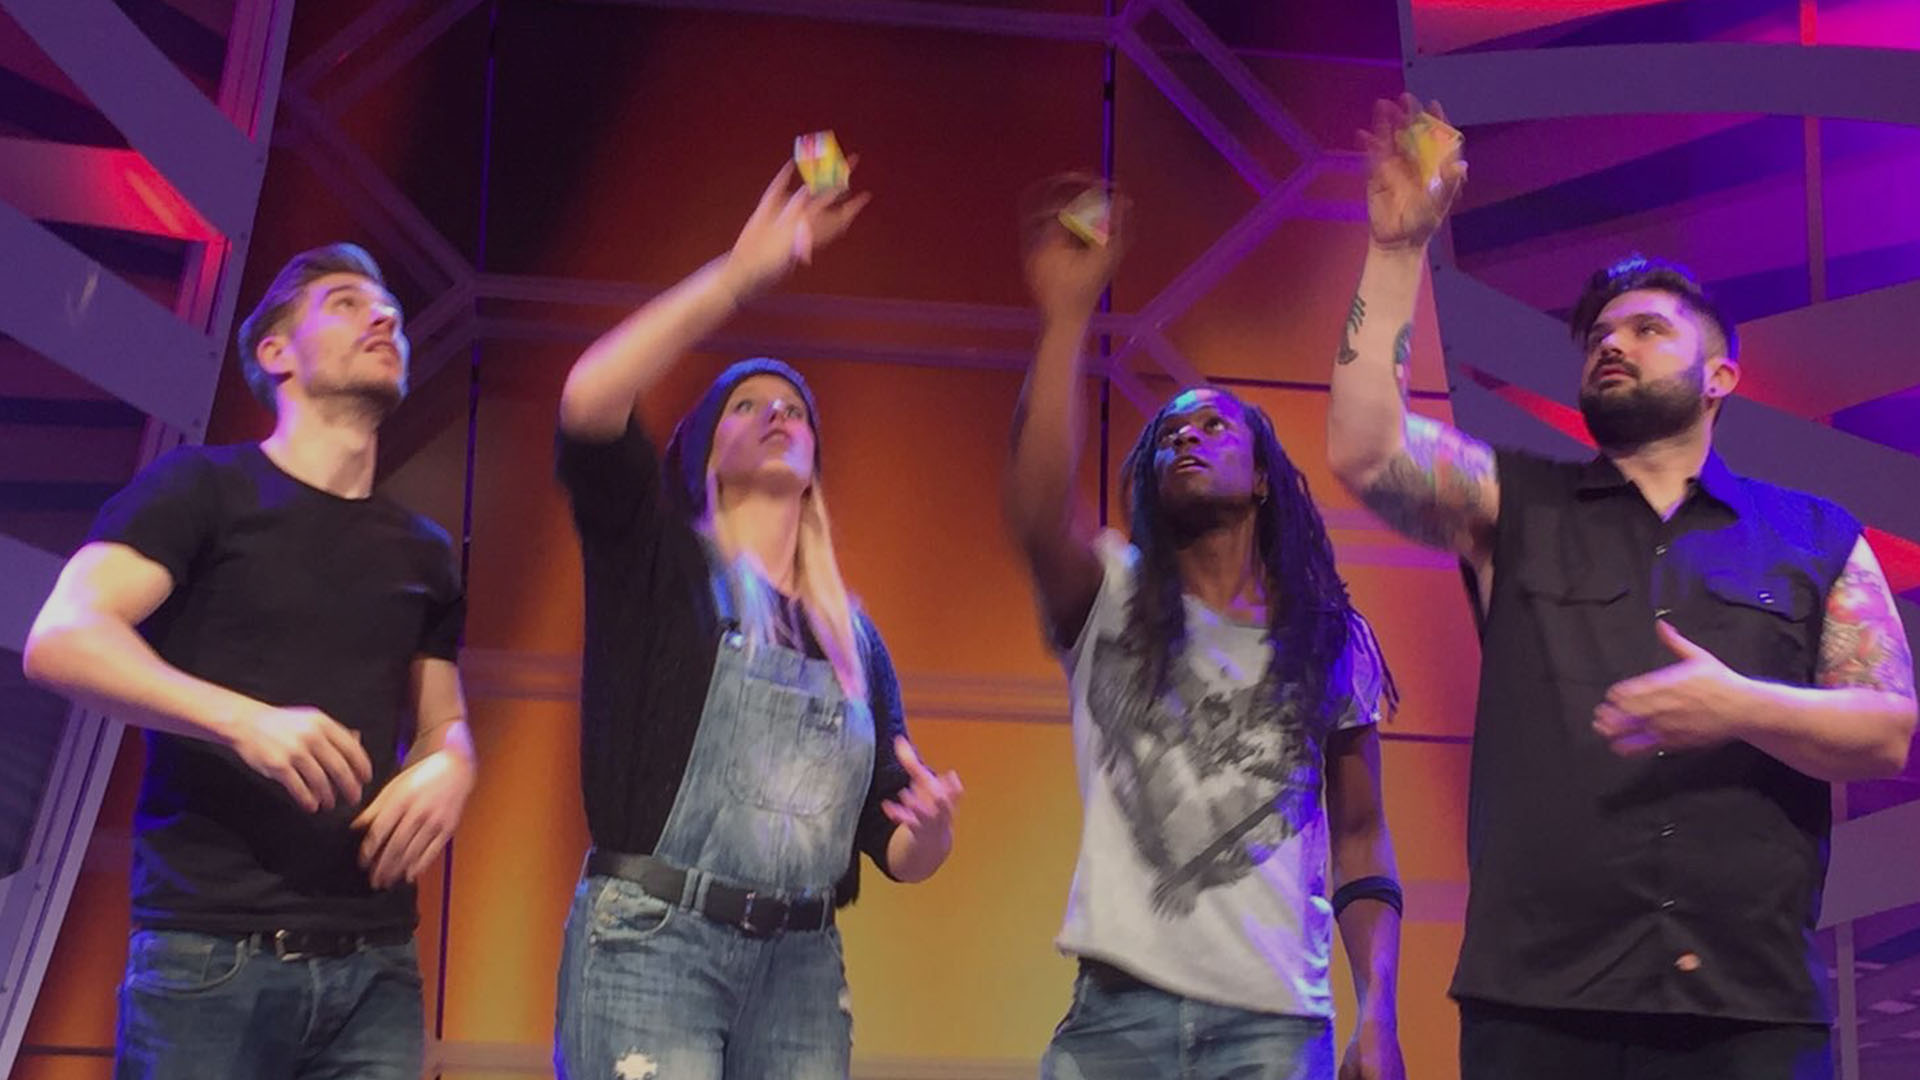 Stomp perform on 'Tijd voor Max' to promote Stomp in Holland - Rob Shaw, Chelsey Jane Foster, Nigel Clarke, Andy Patrick